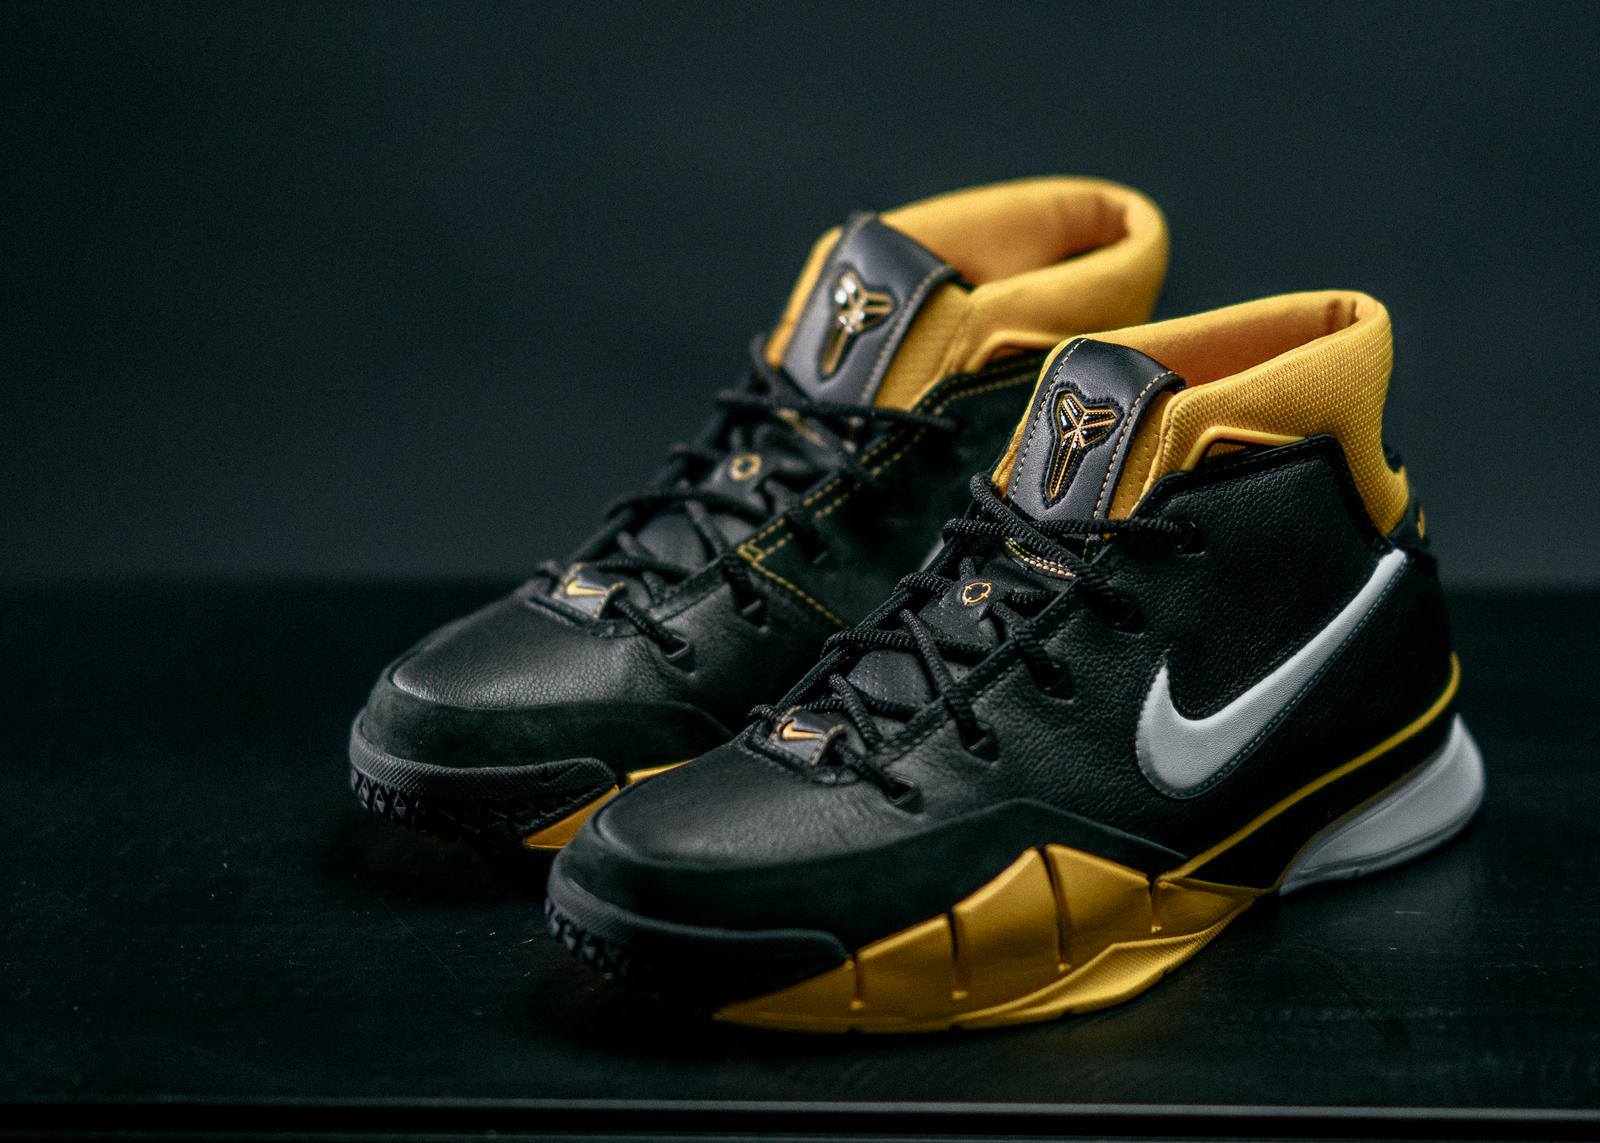 38011620dcd Kobe Bryant Continues to Impact Basketball With the Zoom Kobe 1 ...